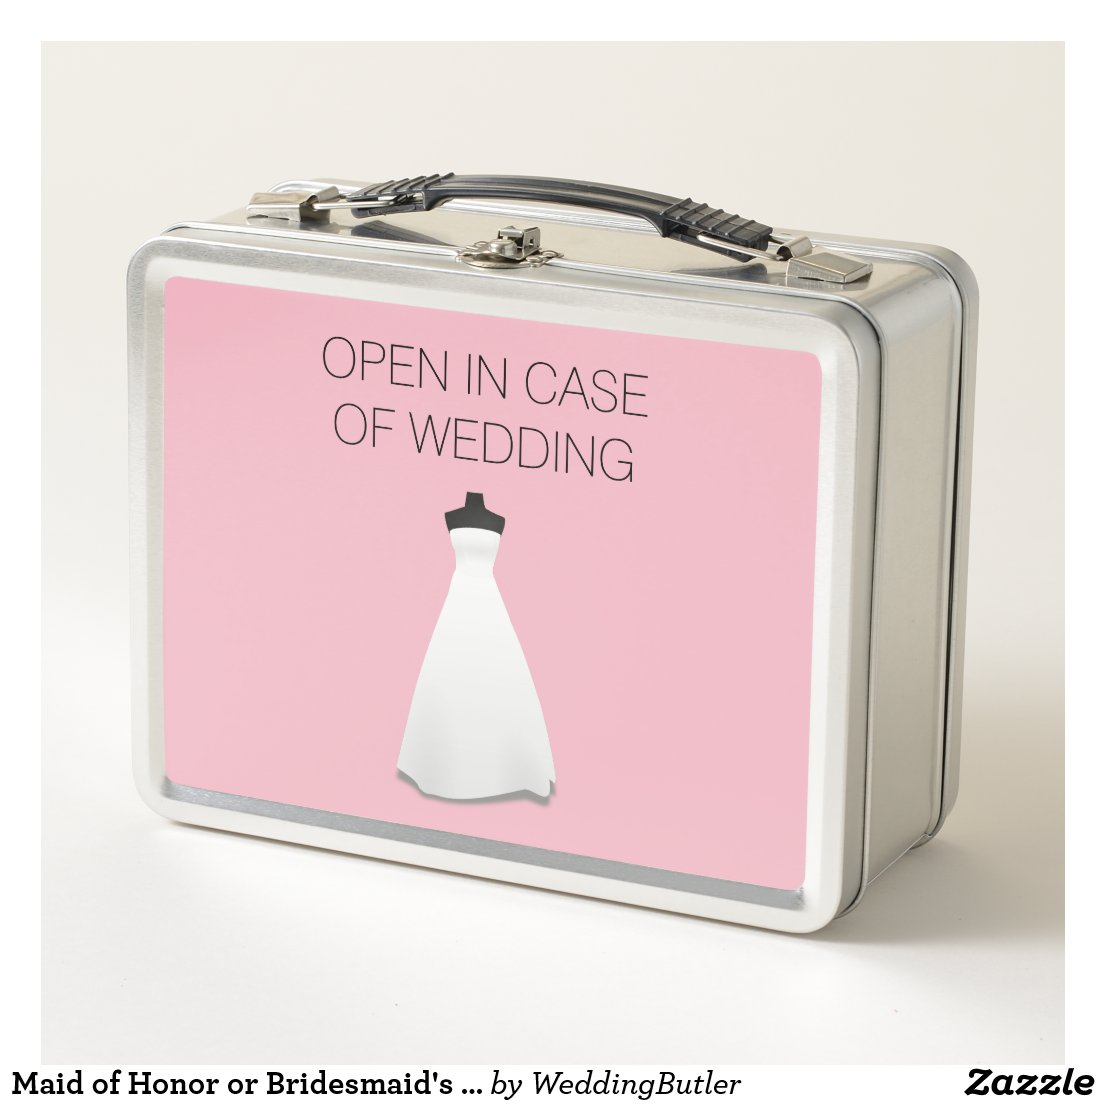 Maid of Honor or Bridesmaid's Lunch Box Invite